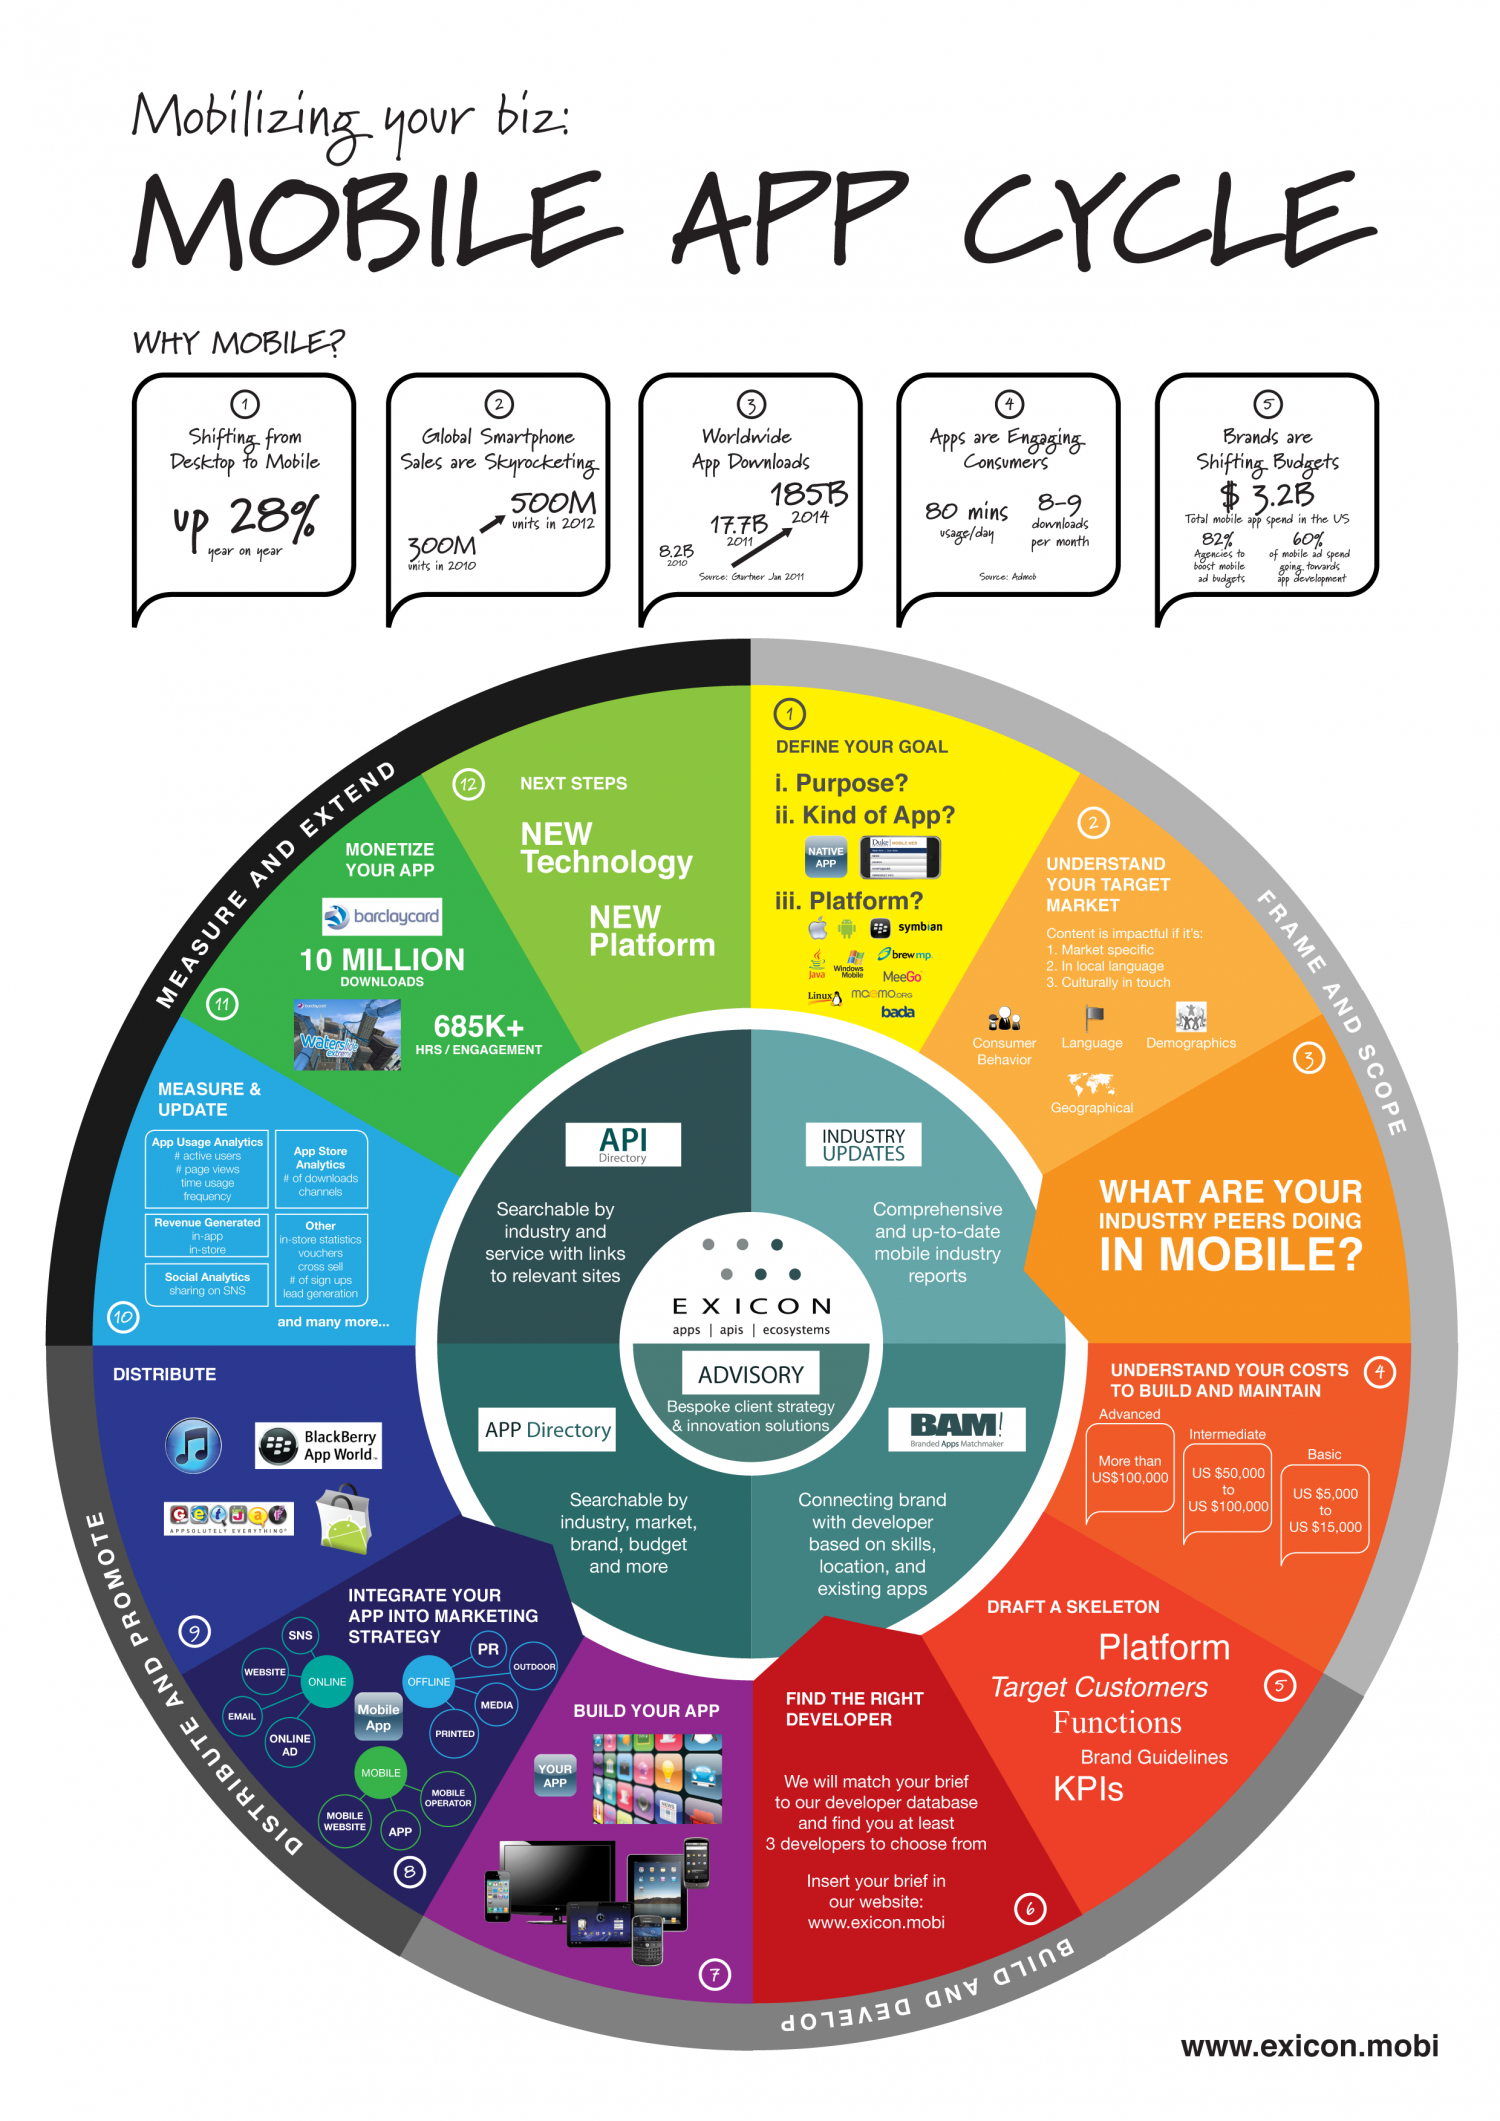 The Mobile App Cycle Infographic